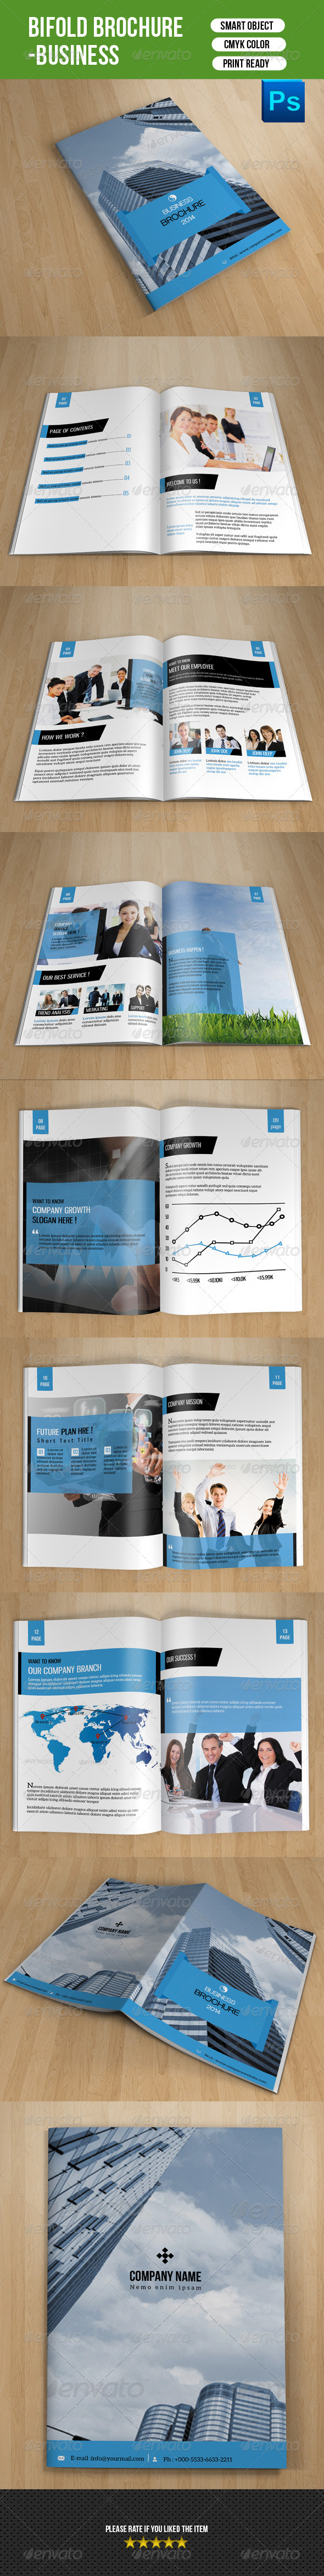 GraphicRiver Bifold Business Brochure-V58 8009510